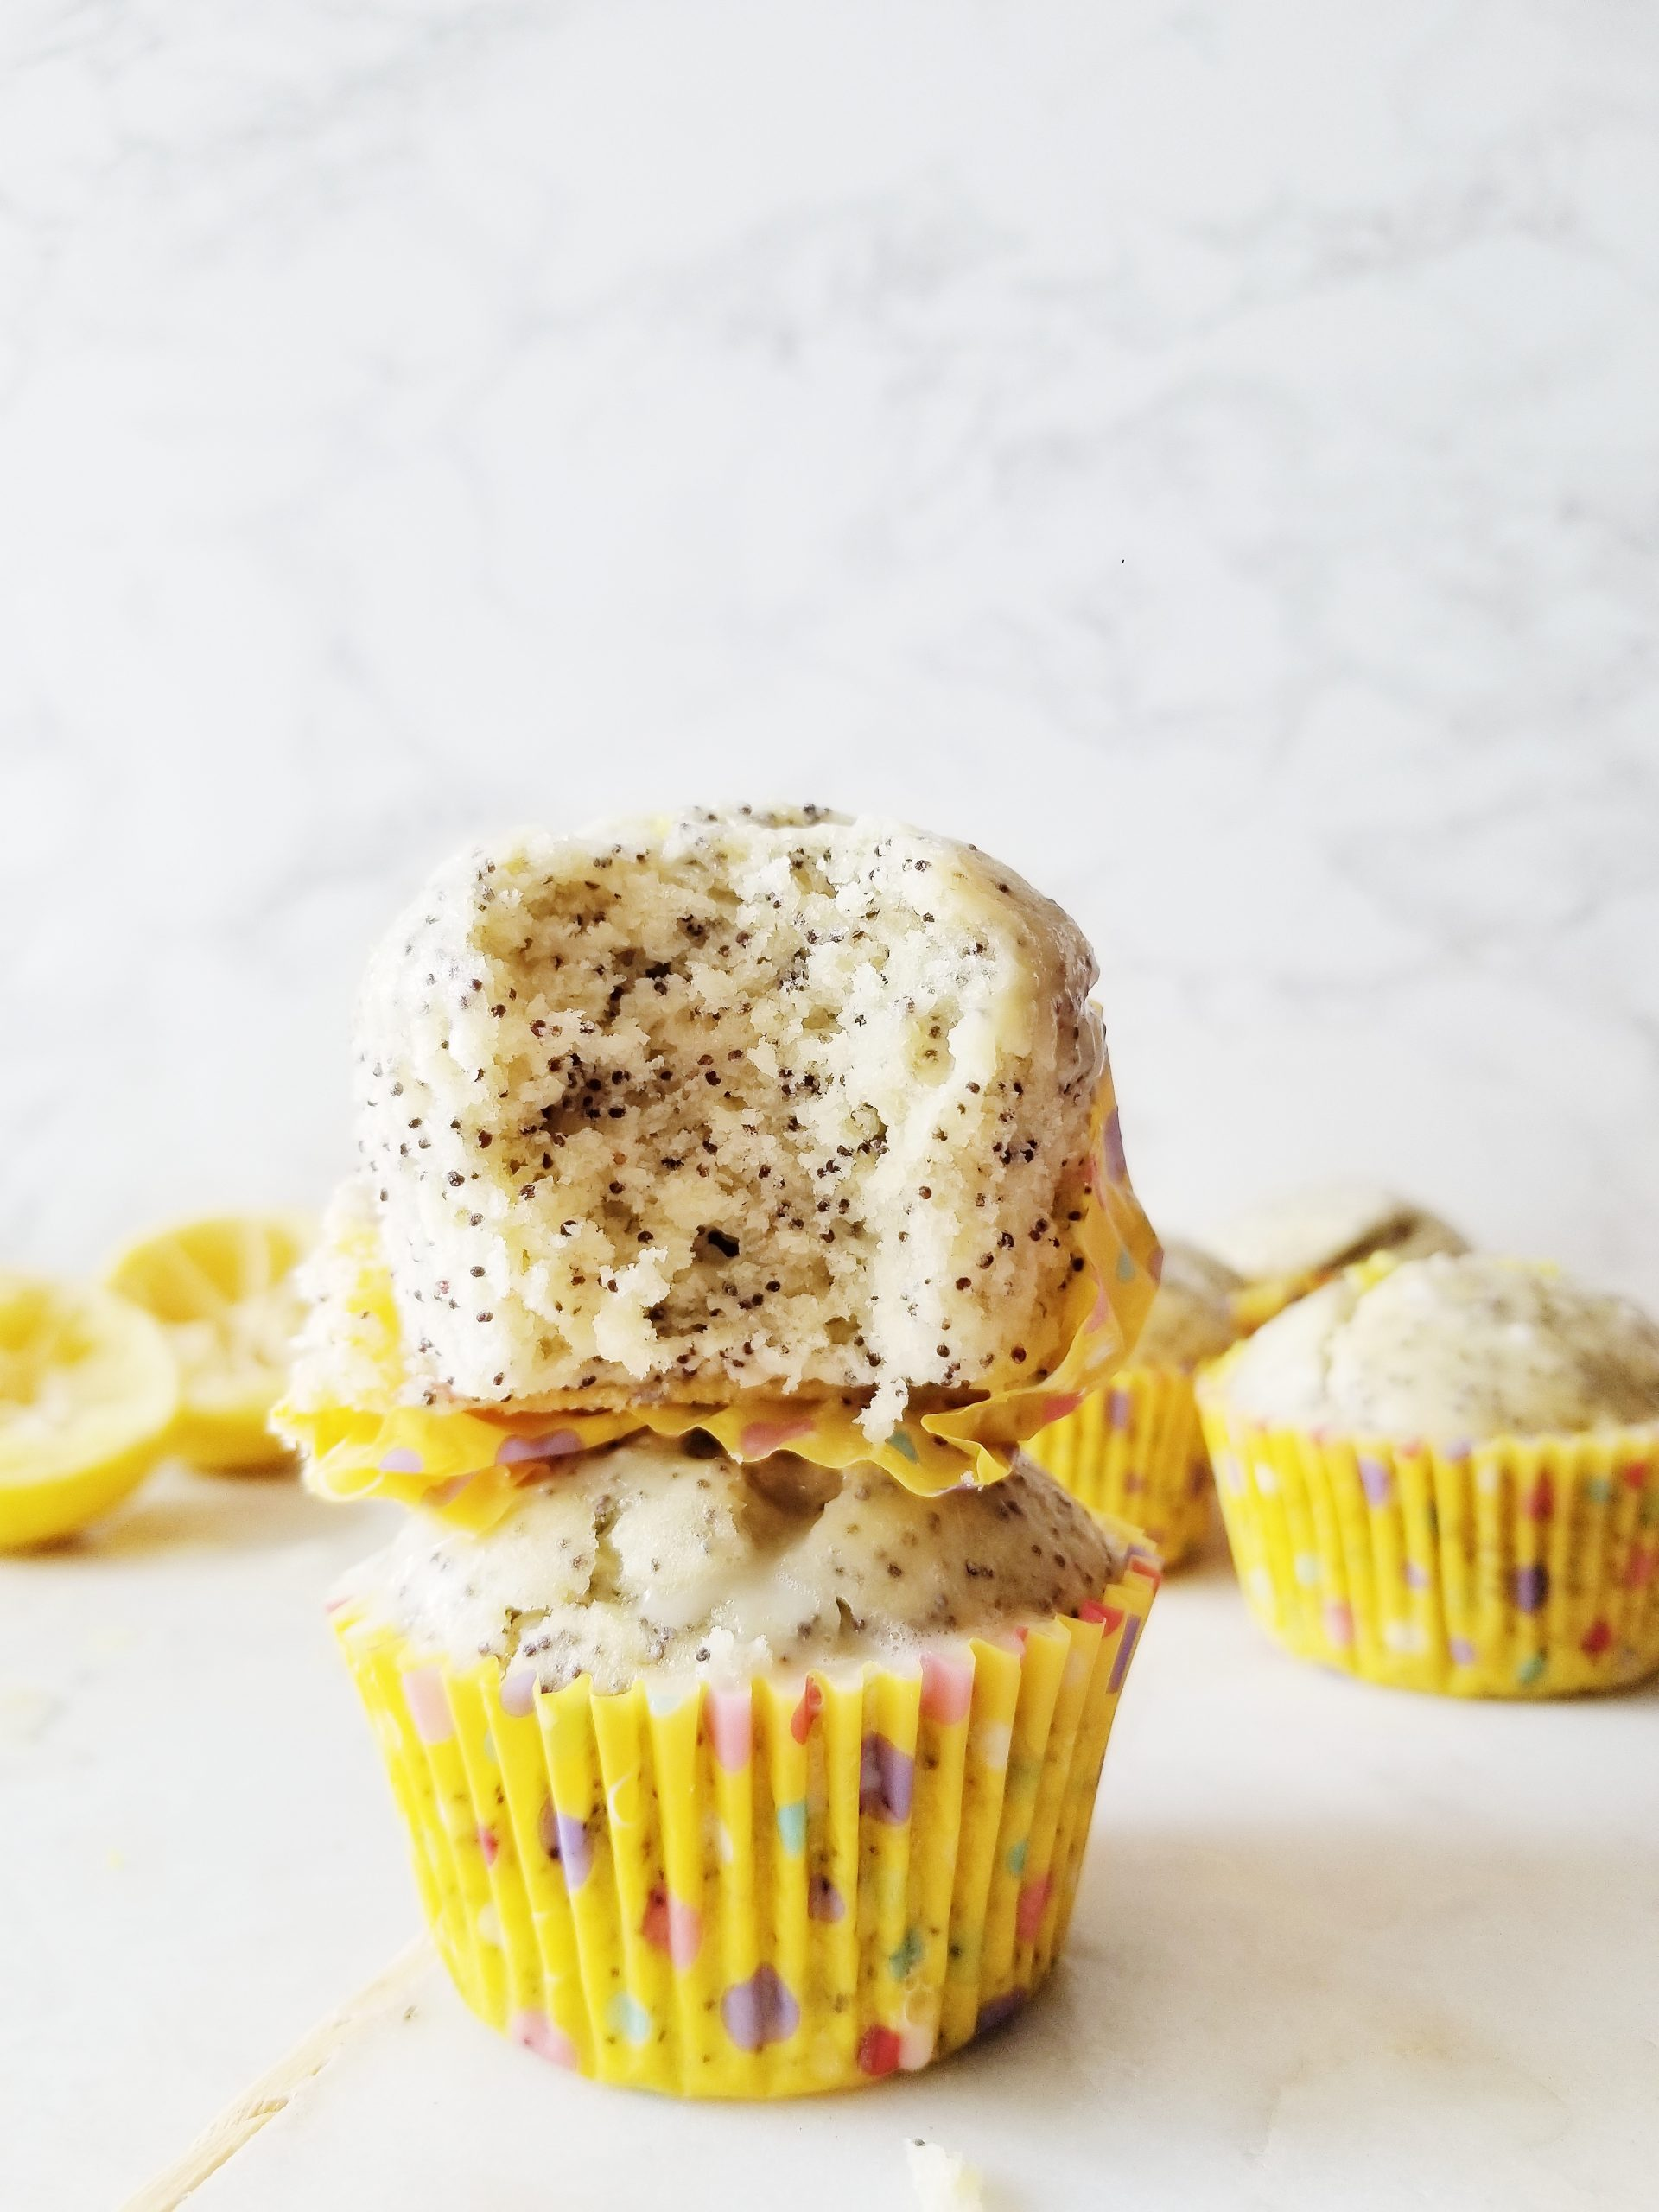 Lemon Poppy Seed Muffins with Coconut Oil